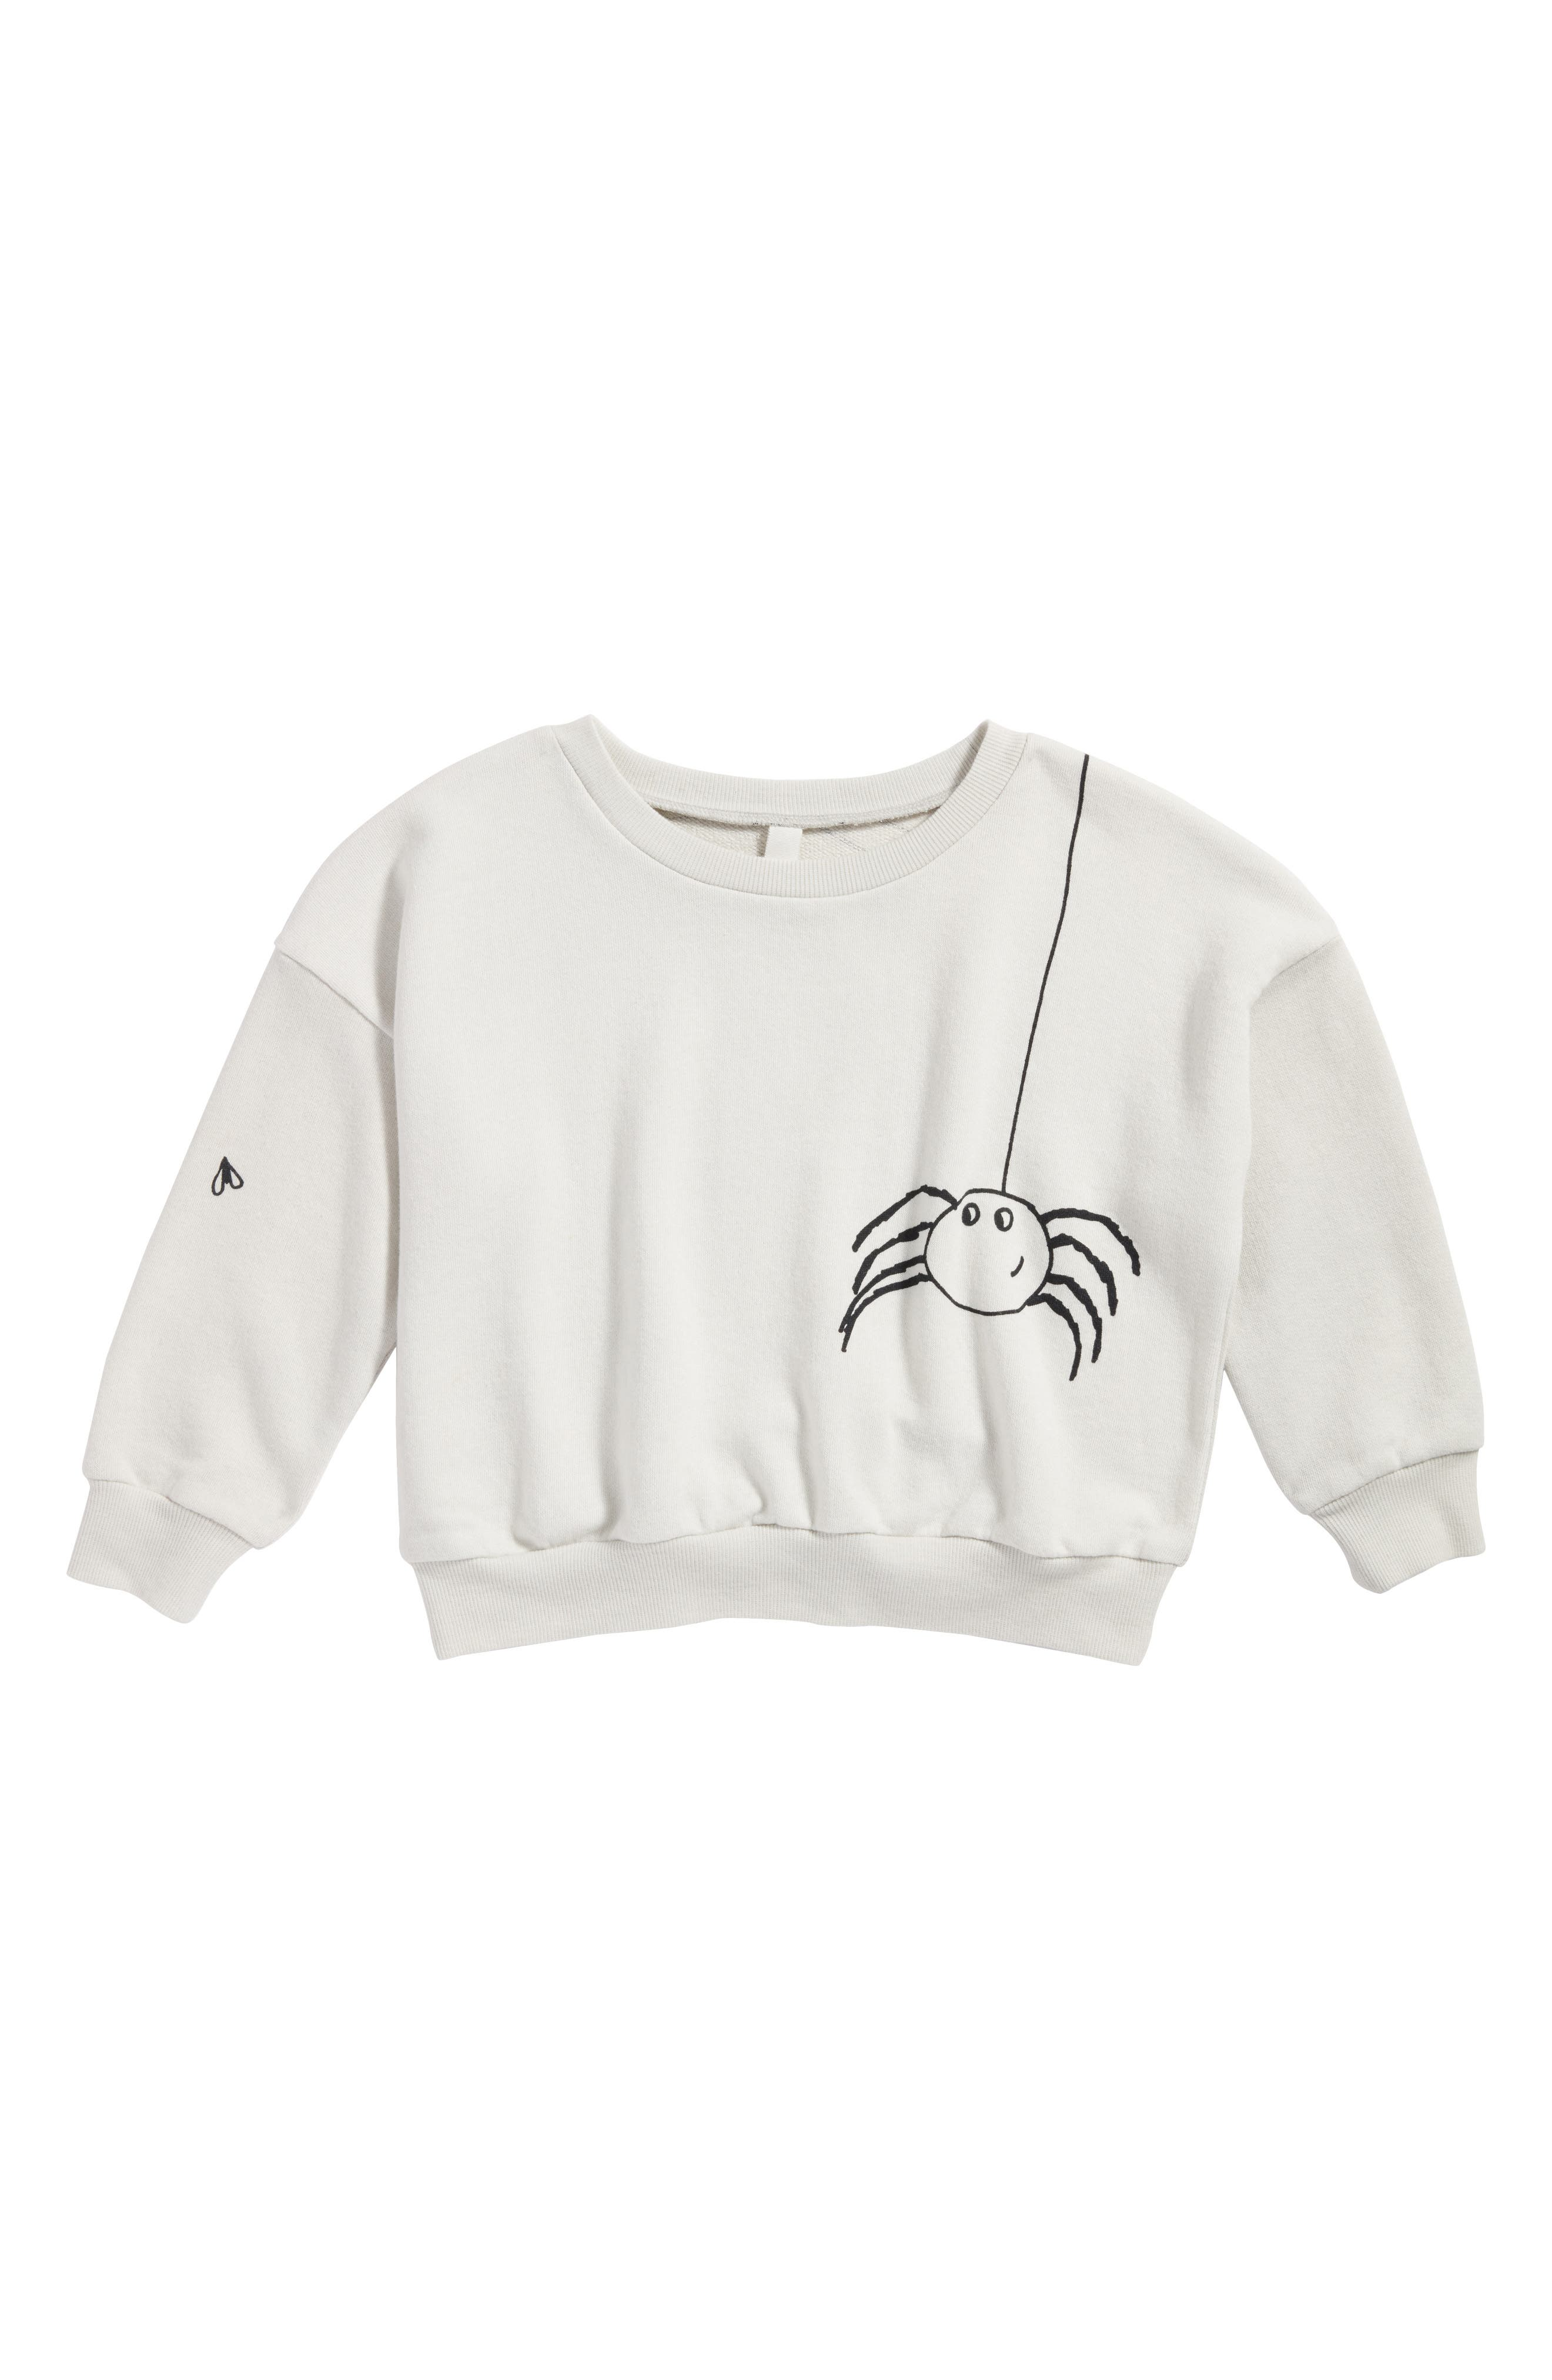 Graphic Sweatshirt,                         Main,                         color,